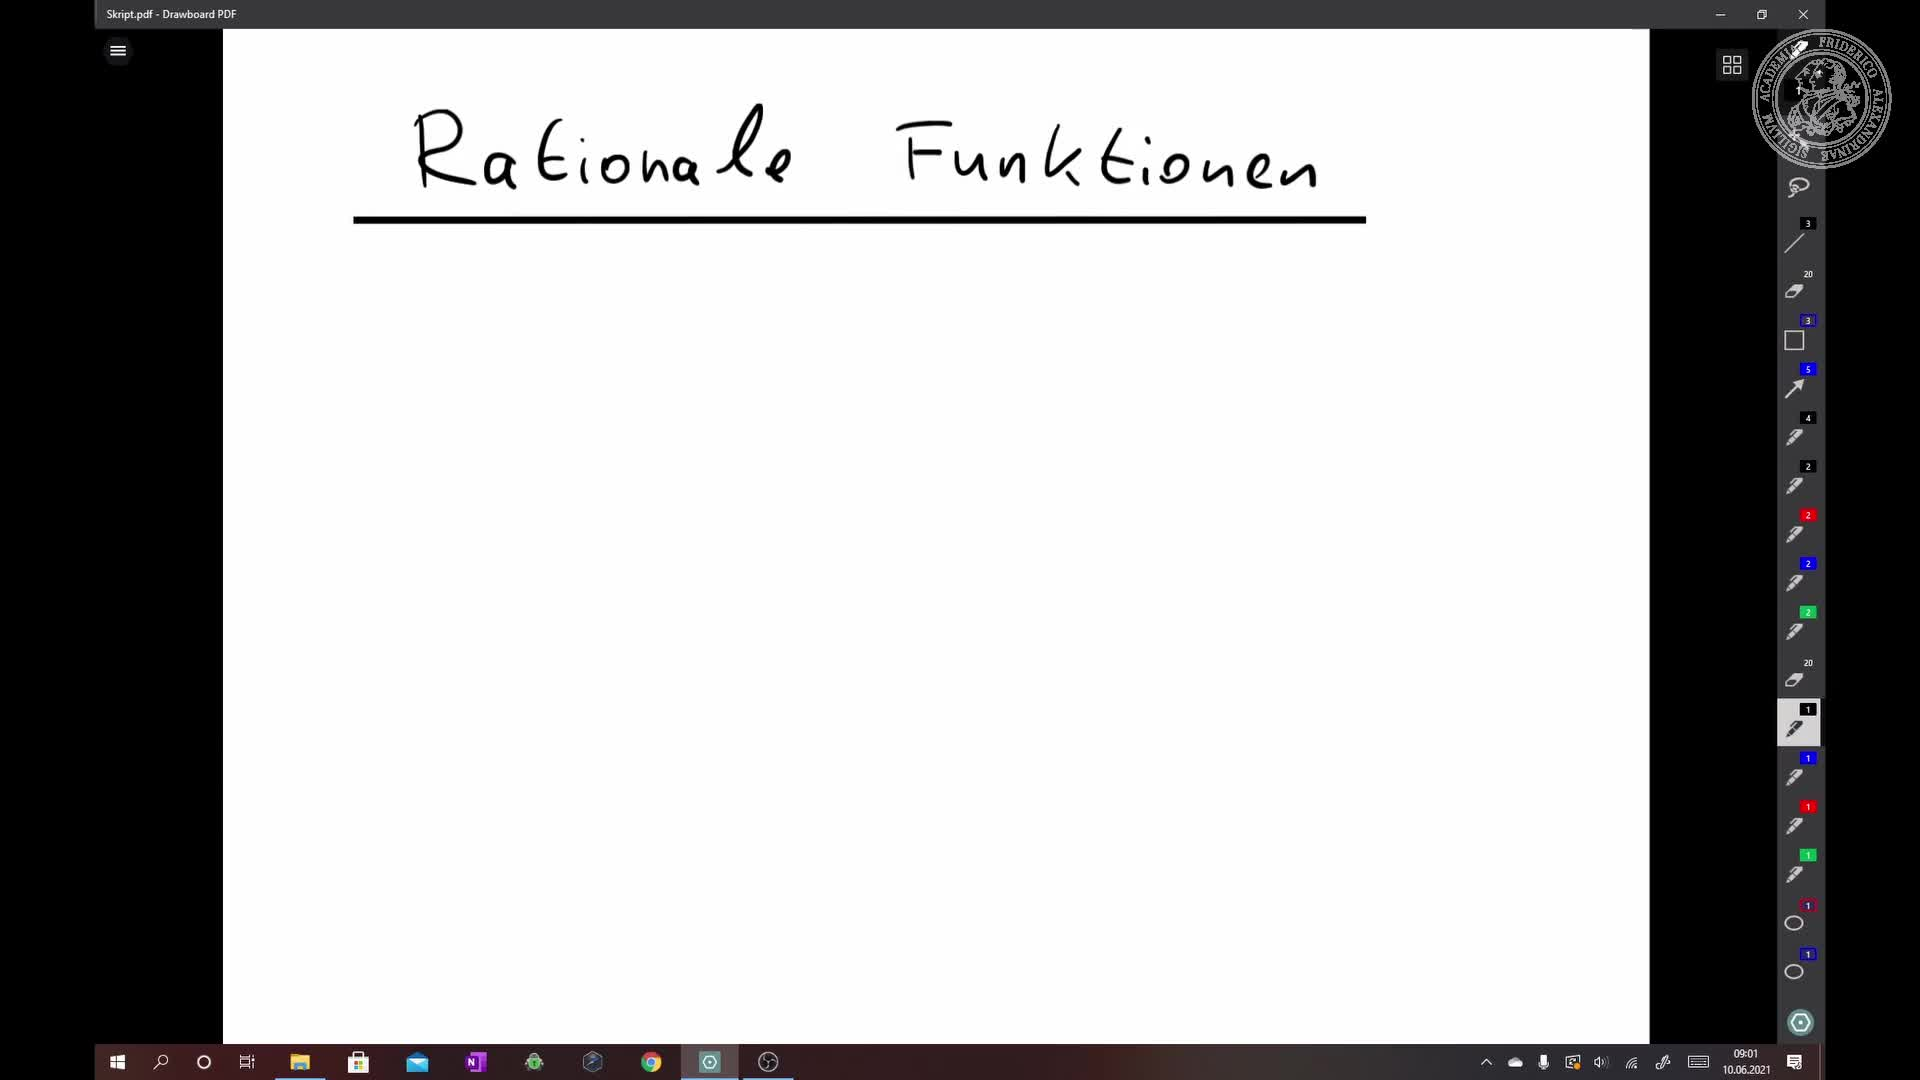 Rationale Funktionen preview image